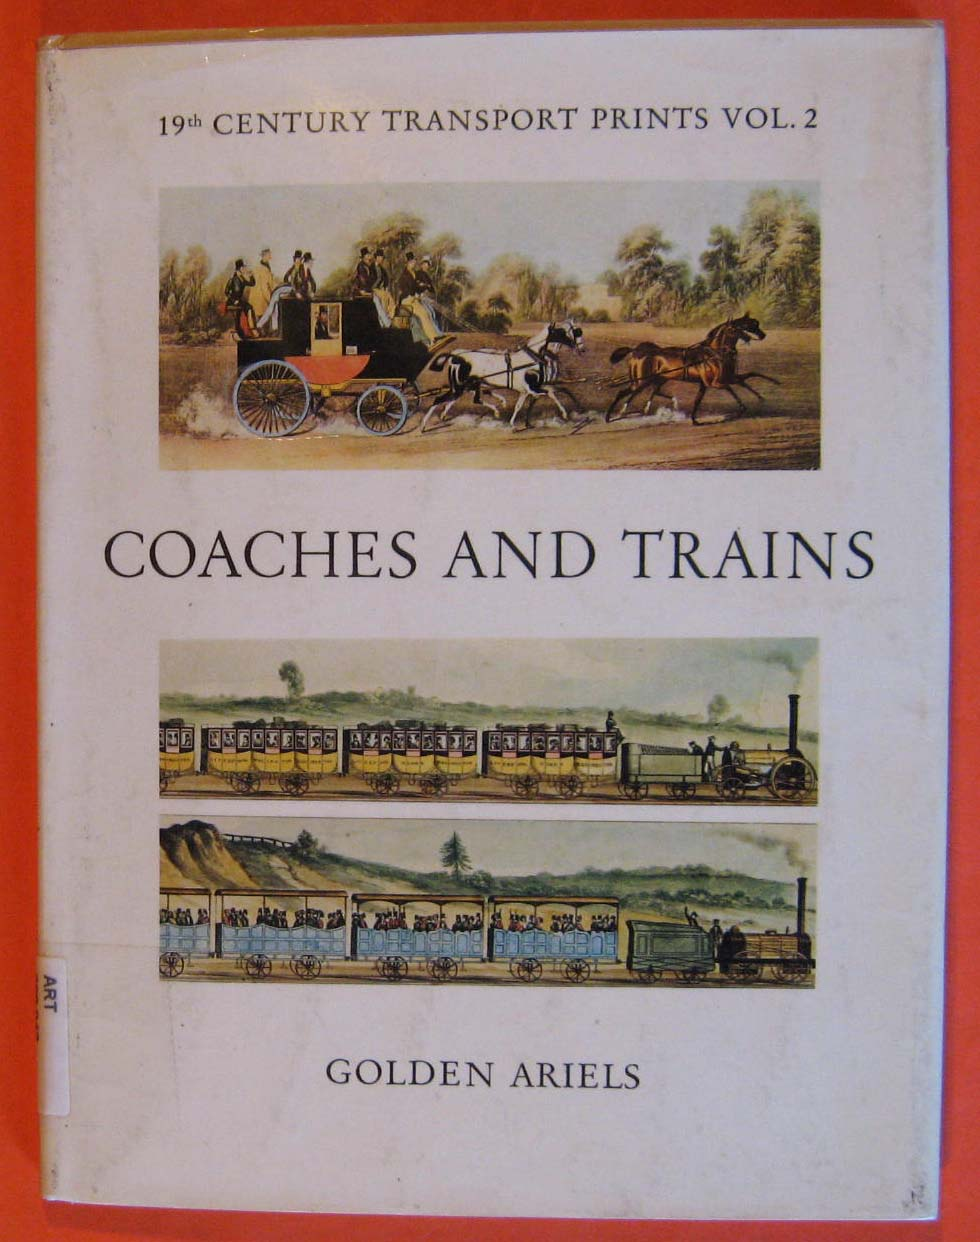 Coaches and Trains (19th Century Transport Prints Vol. 2), Cadfryn-Roberts, John